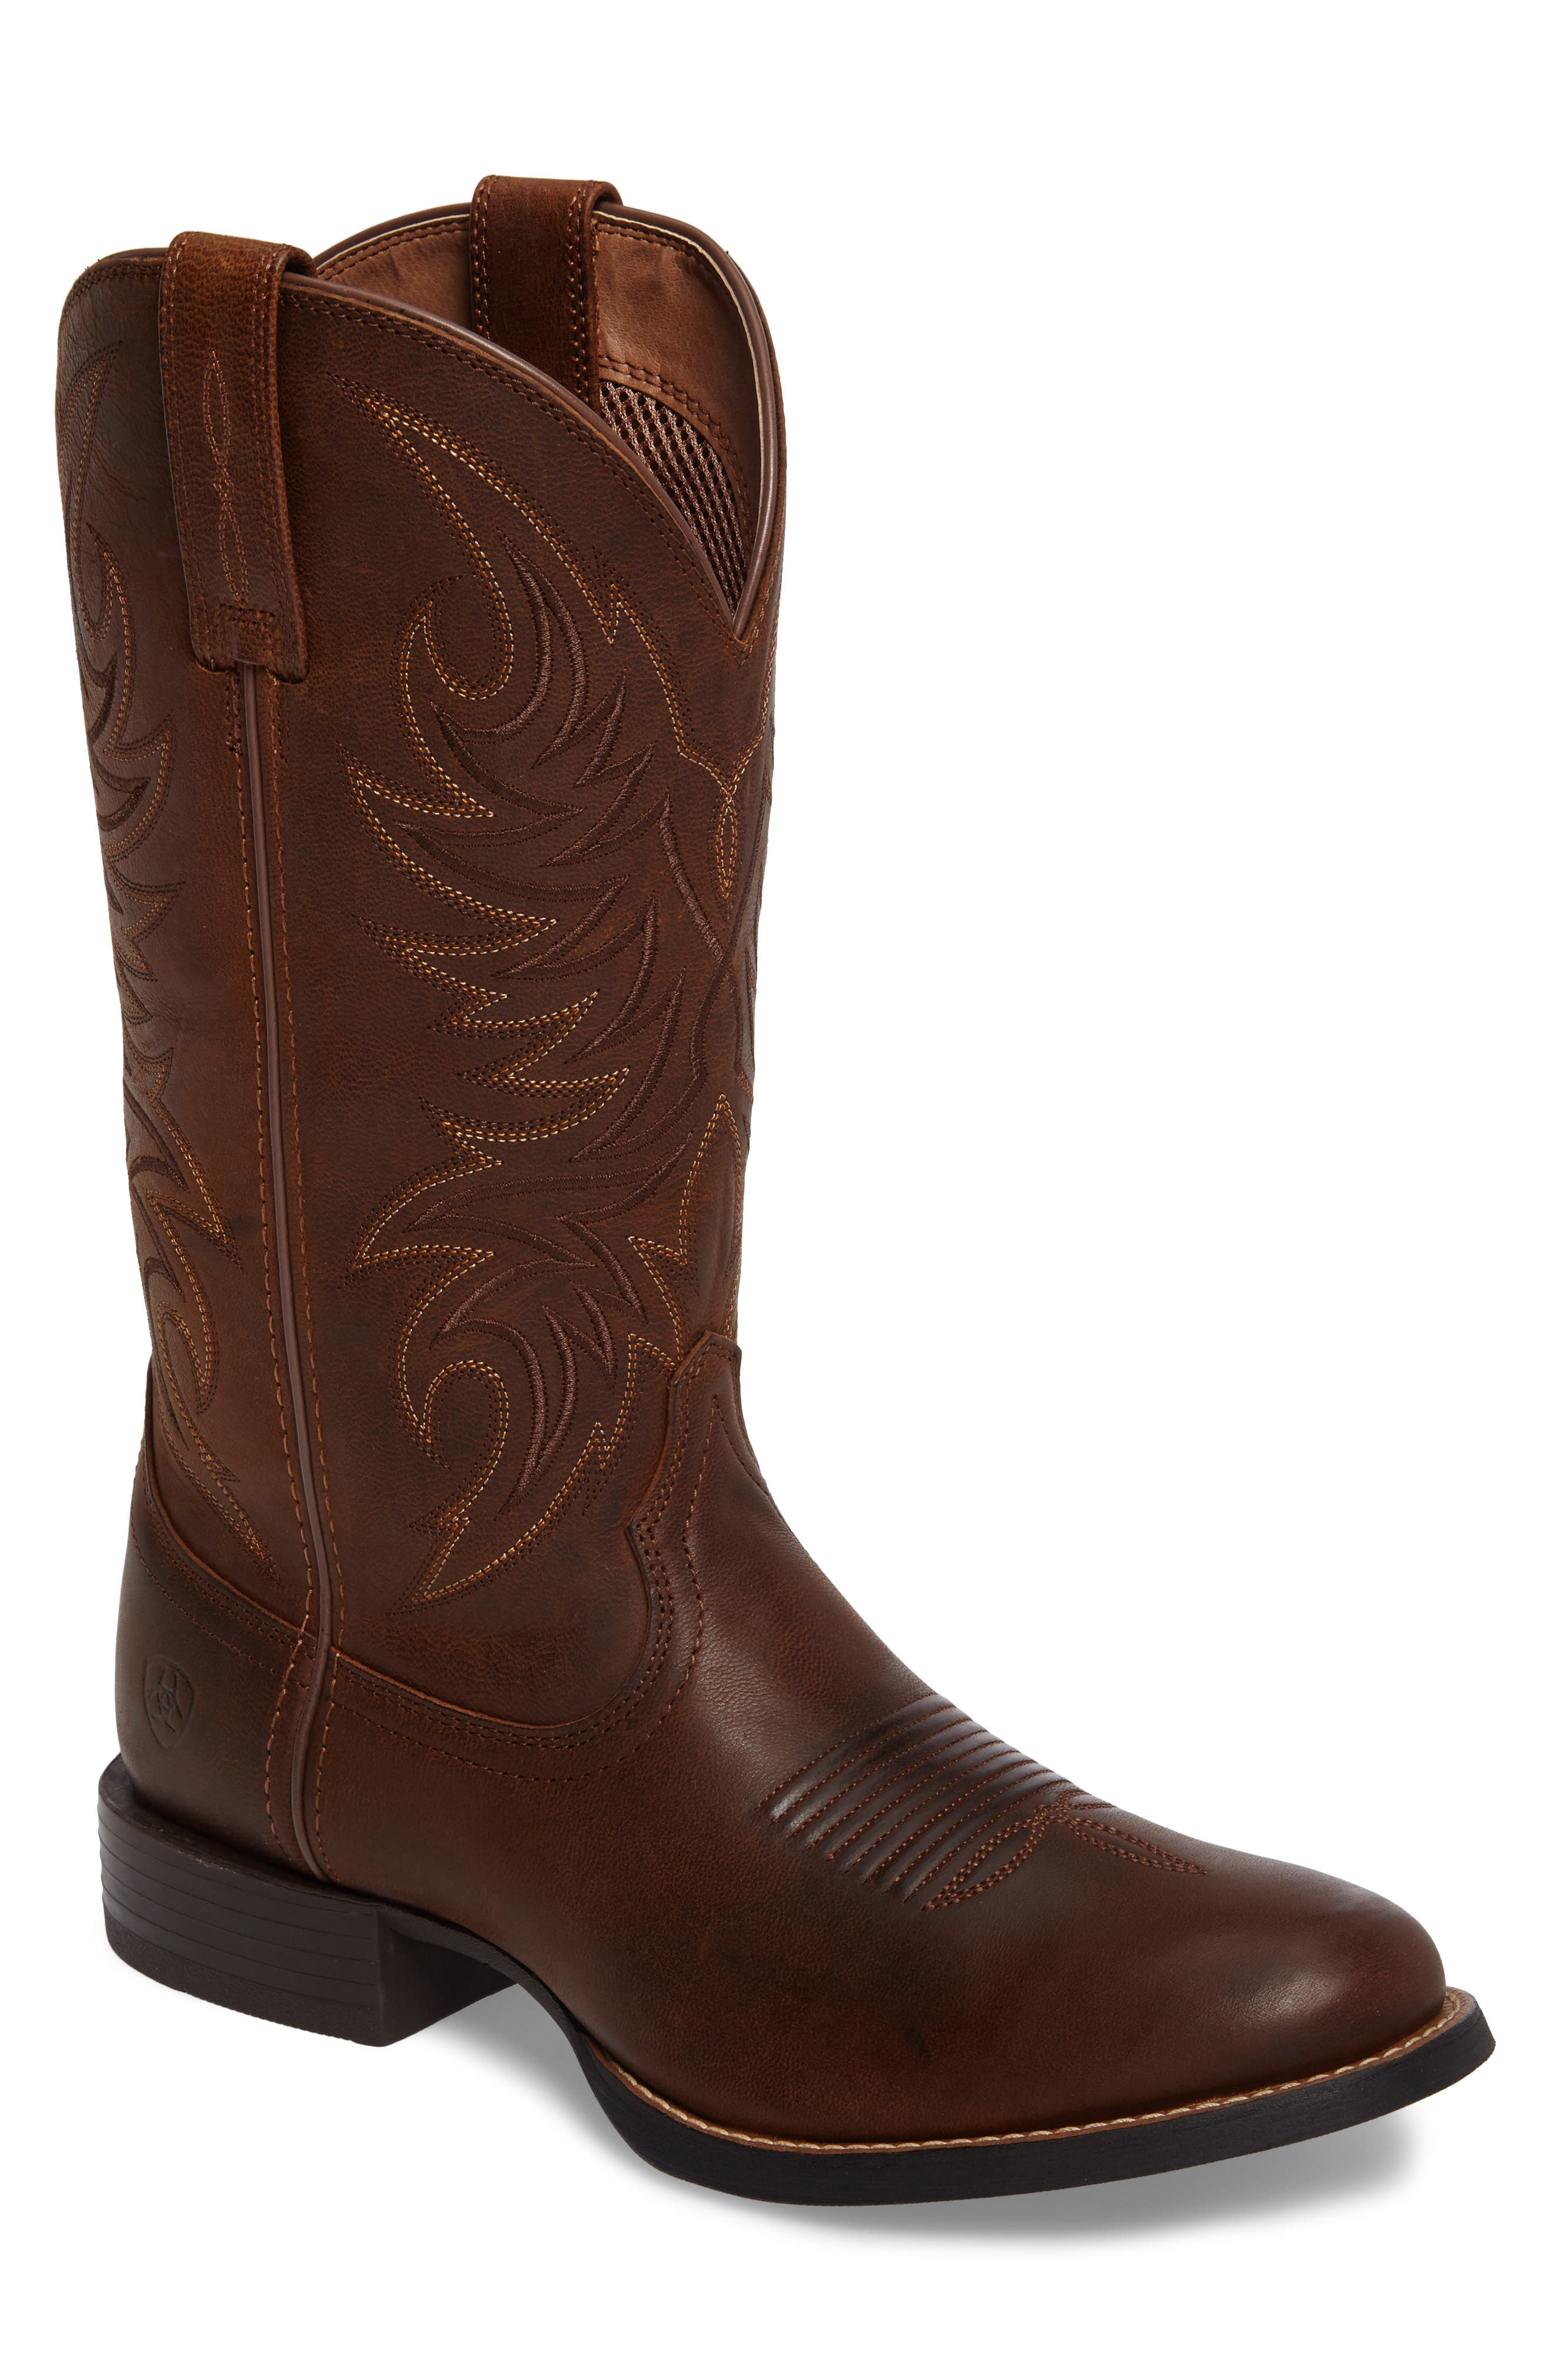 ARIAT Sport Horsemen Cowboy Boot, Main, color, 200